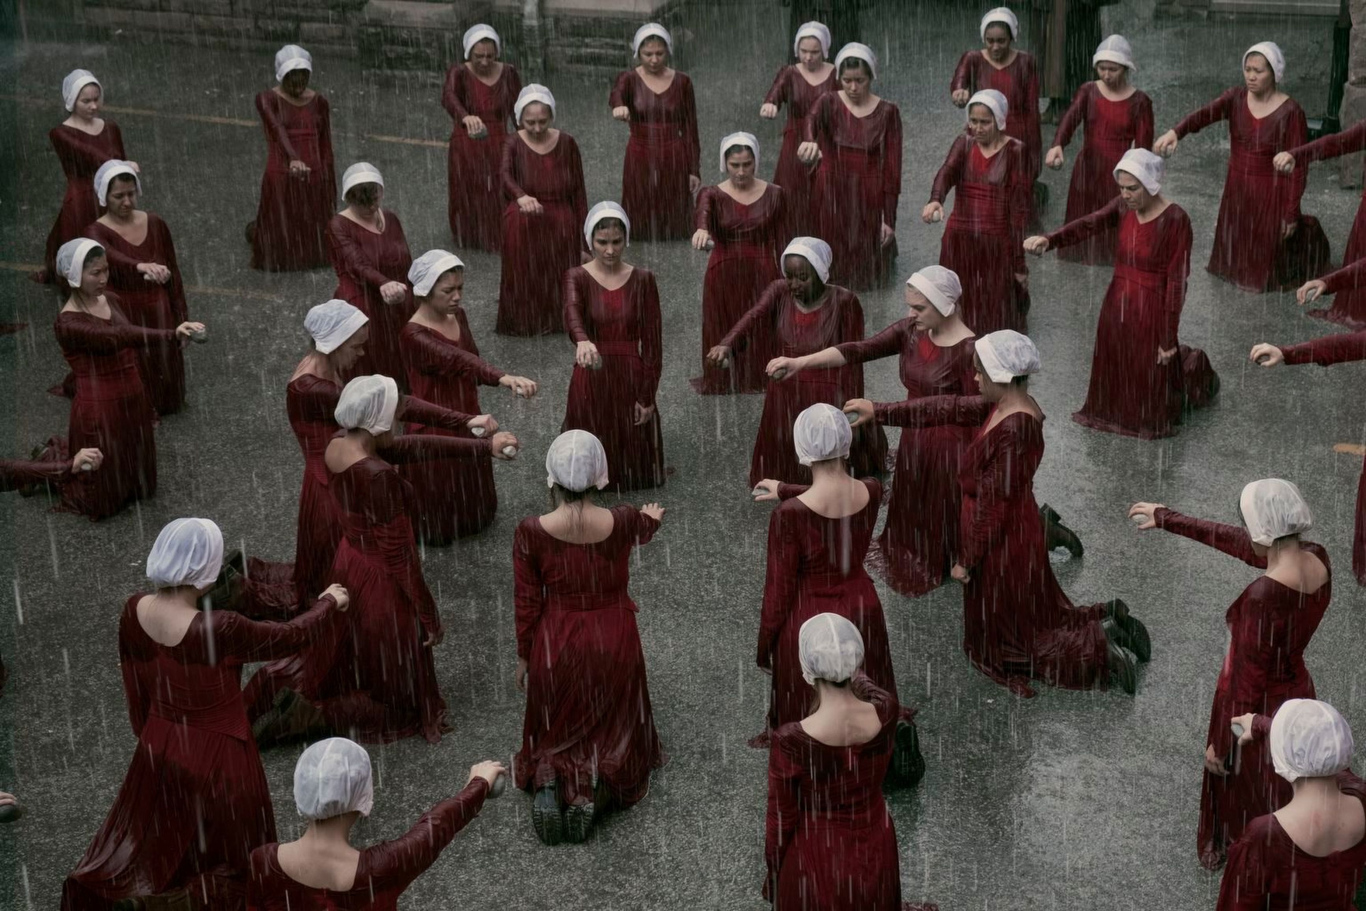 Editorial use only. No book cover usage.Mandatory Credit: Photo by George Kraychyk/MGM/Hulu/Kobal/Shutterstock (10051644v) The Handmaid's Tale (2018) 'The Handmaid's Tale' TV Show Season 2 - 2018 Set in a dystopian future, a woman is forced to live as a concubine under a fundamentalist theocratic dictatorship.